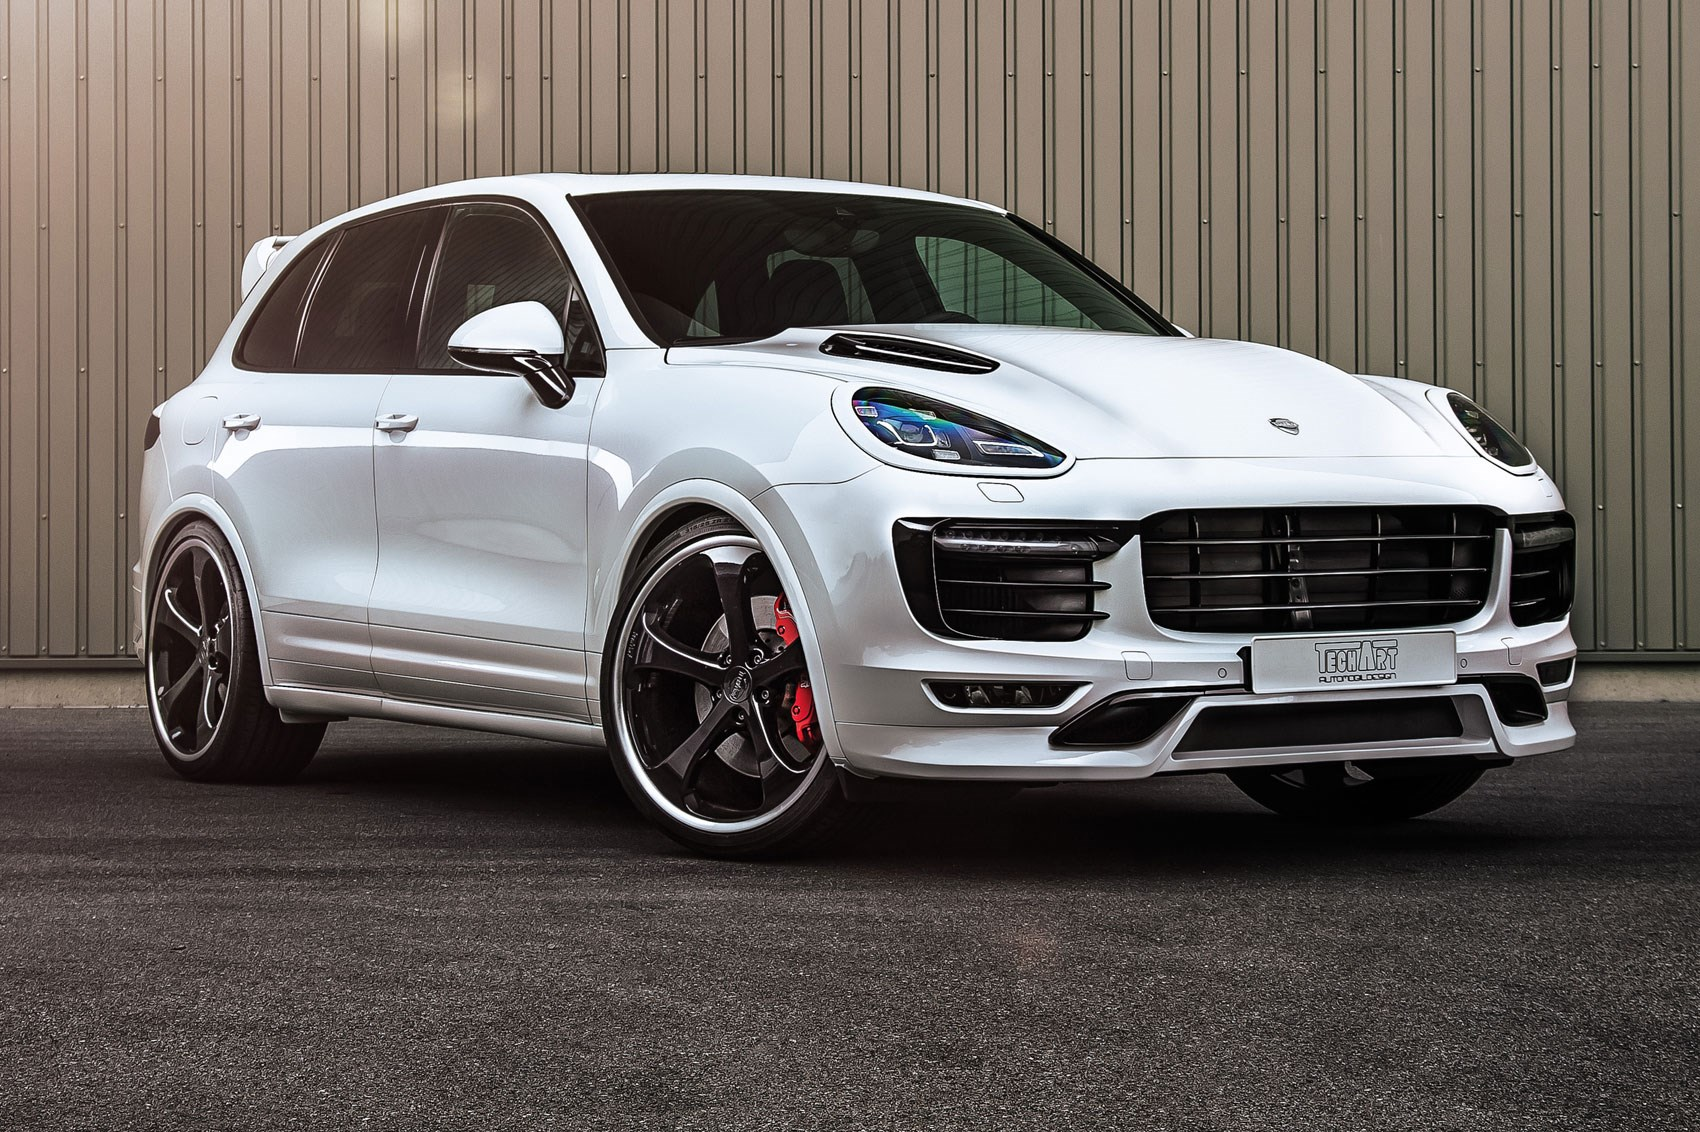 techart porsche cayenne turbo the 700bhp suv by car magazine. Black Bedroom Furniture Sets. Home Design Ideas